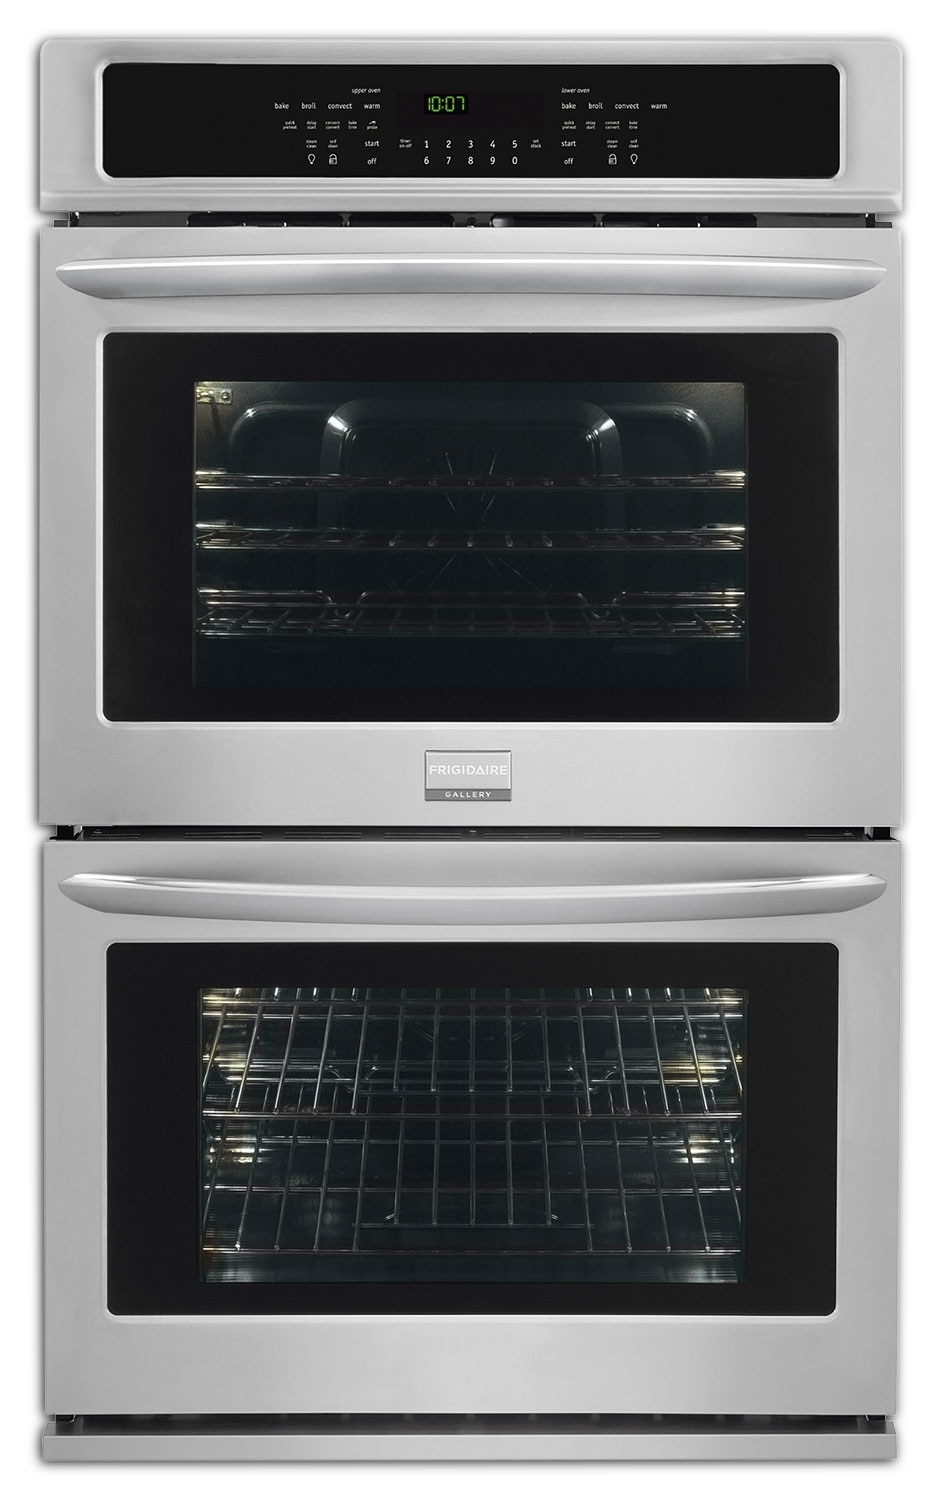 Frigidaire Gallery Stainless Steel Double Convection Wall Oven (9.2 Cu. Ft.) - FGET3065PF